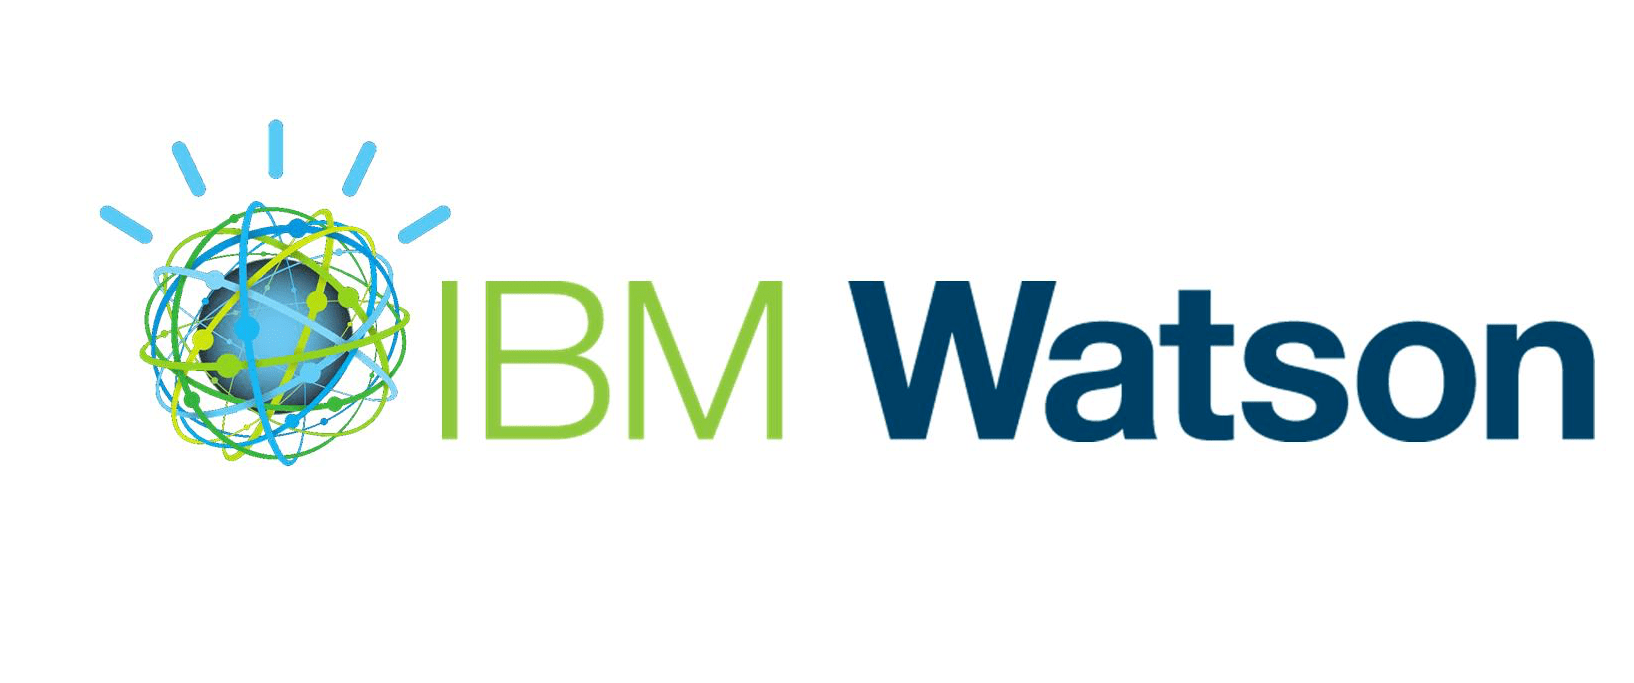 IBM Watson Logo - IBM Launches Cognitive Computing Services to Transform Business and ...